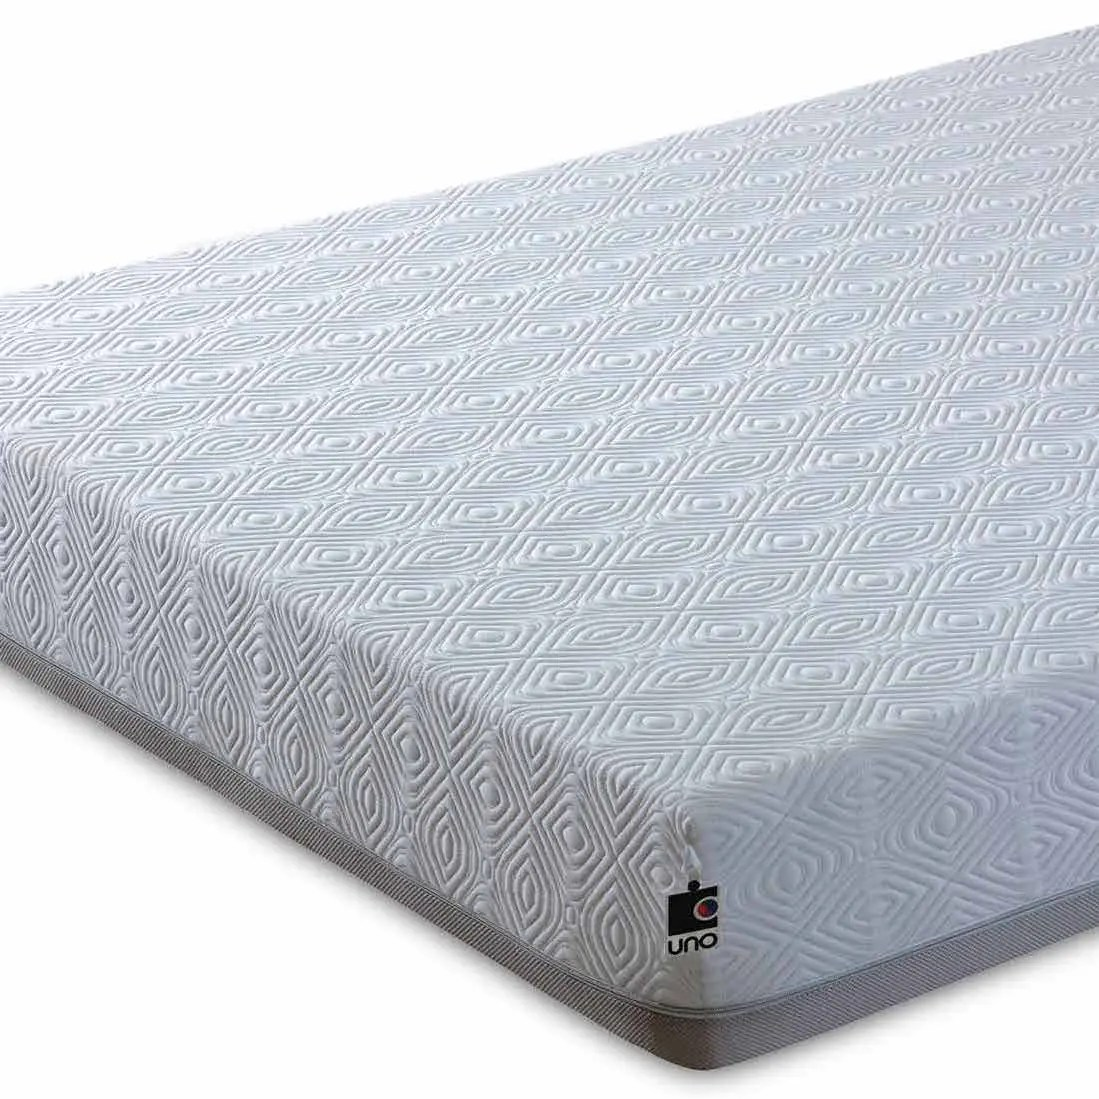 Breasley Mattress Review Breasley Uno Memory Pocket 1000 Best Price Promise